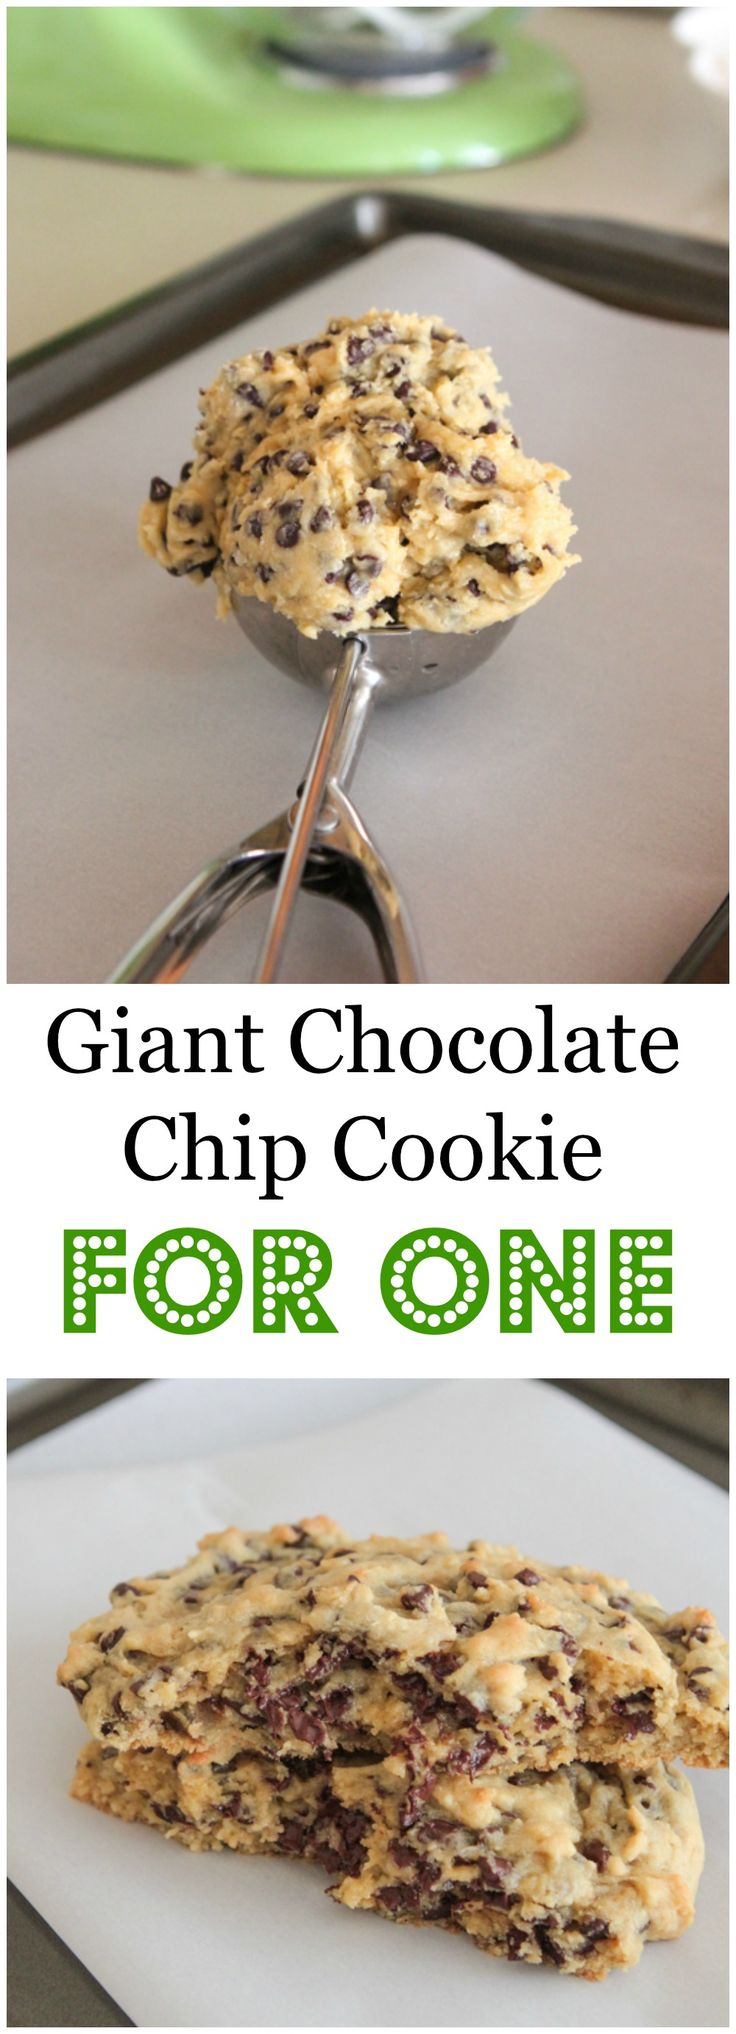 air max 2014 mens white Giant Chocolate Chip Cookie Recipe For One  Whip up a delicious butter crisp yet soft centered chocolate chip cookie all for yourself     cookie  recipe  chocolatechip